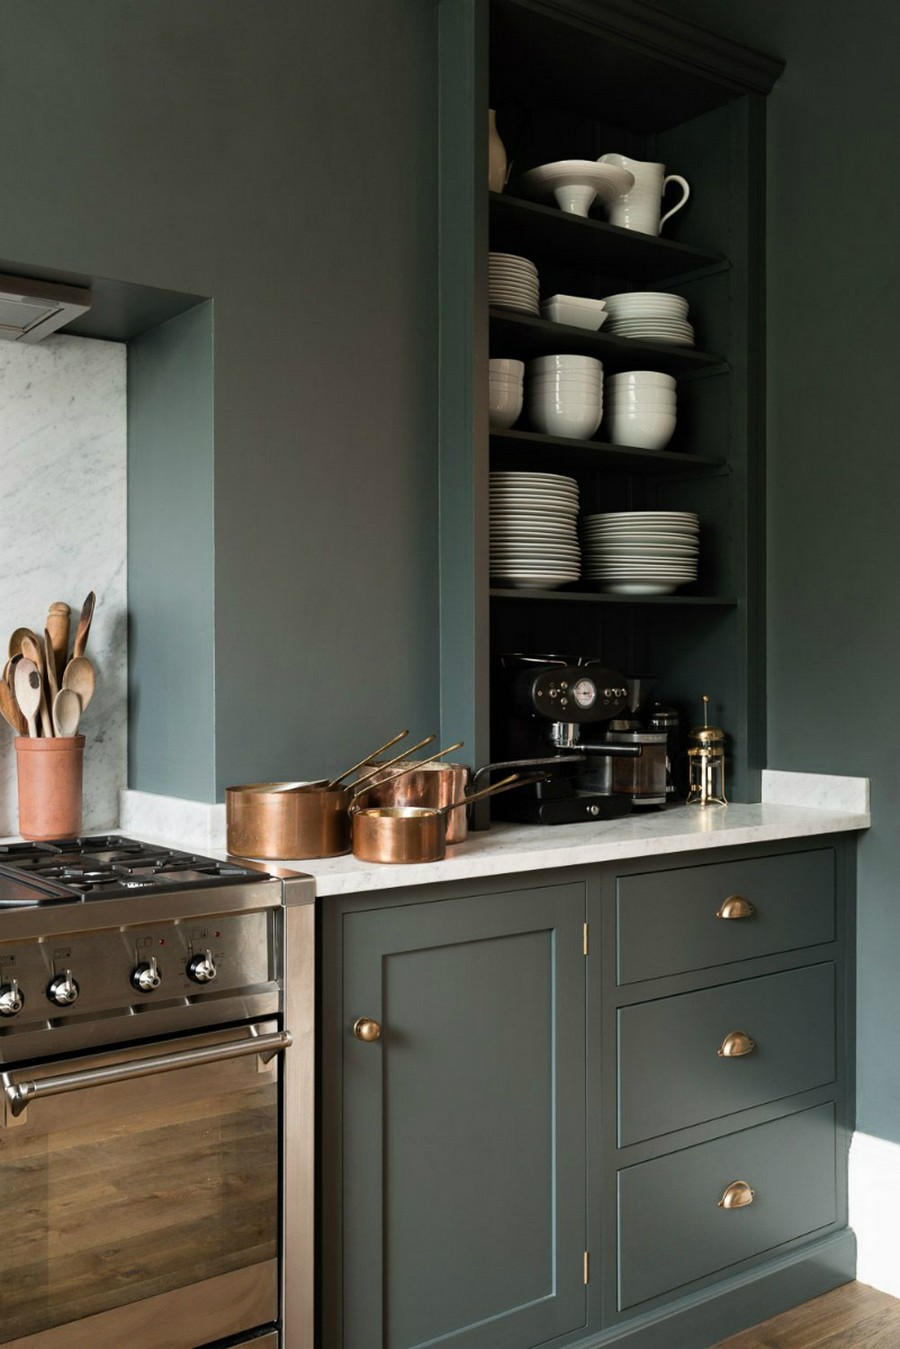 2019 Kitchen Design Trends That You Must Know For Your Home Decor 2019 kitchen design trends 2019 Kitchen Design Trends That You Must Know For Your Home Decor 2019 Kitchen Design Trends That You Must Know For Your Home Decor 3